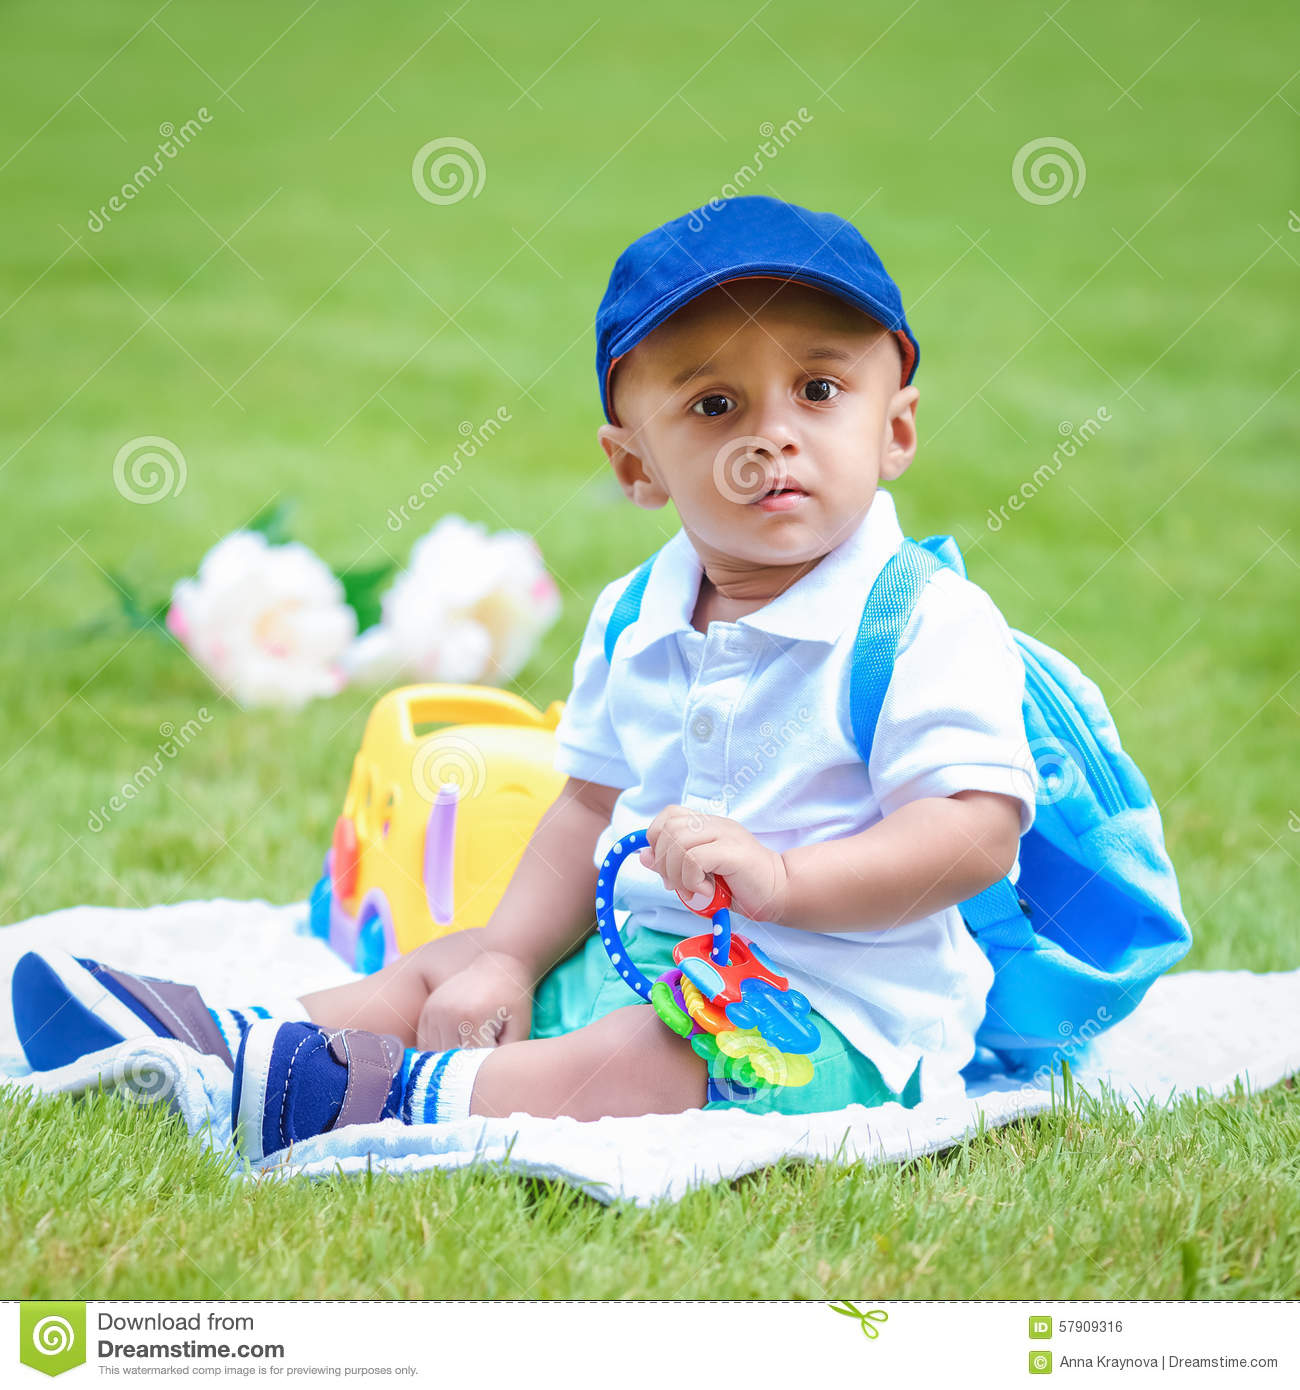 Portrait Of Indian Baby Boy With Backpack Sitting On Ground Stock ... e3c63689831d0